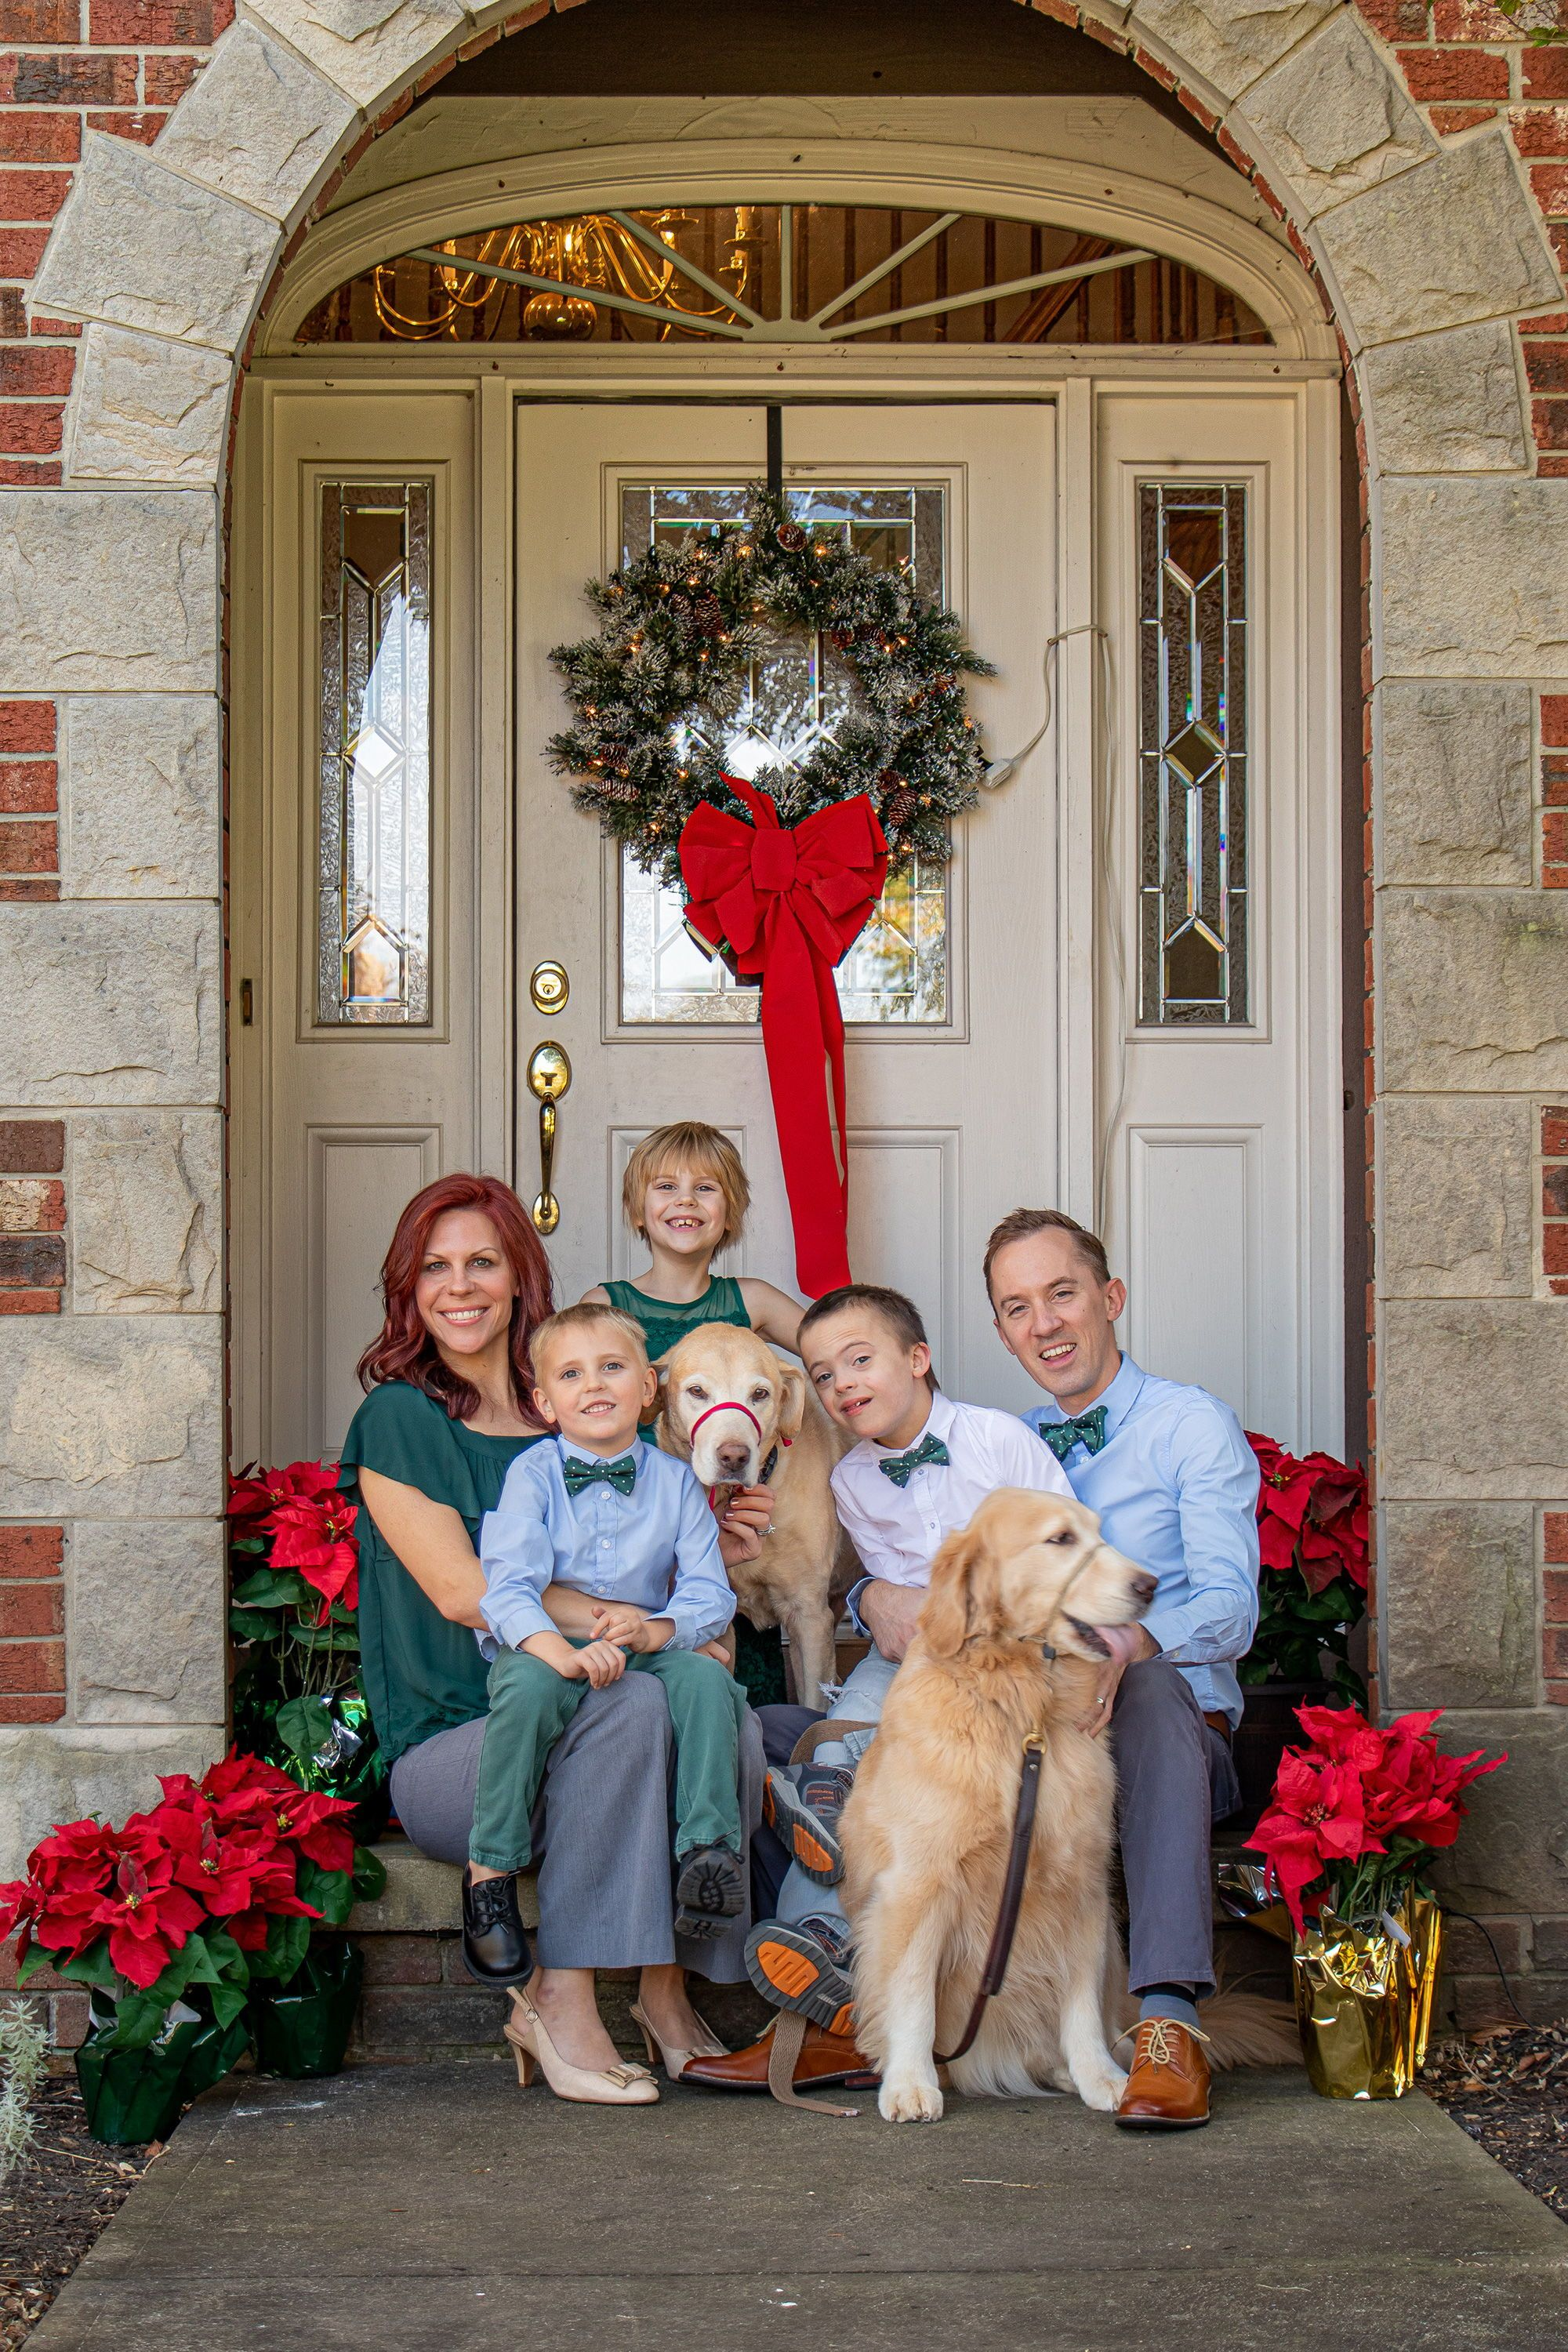 Christmas Picture Trends Style ideas for family photos and Christmas cards If youre looking for some adorable family photos for your custom Christmas card photos this yea...